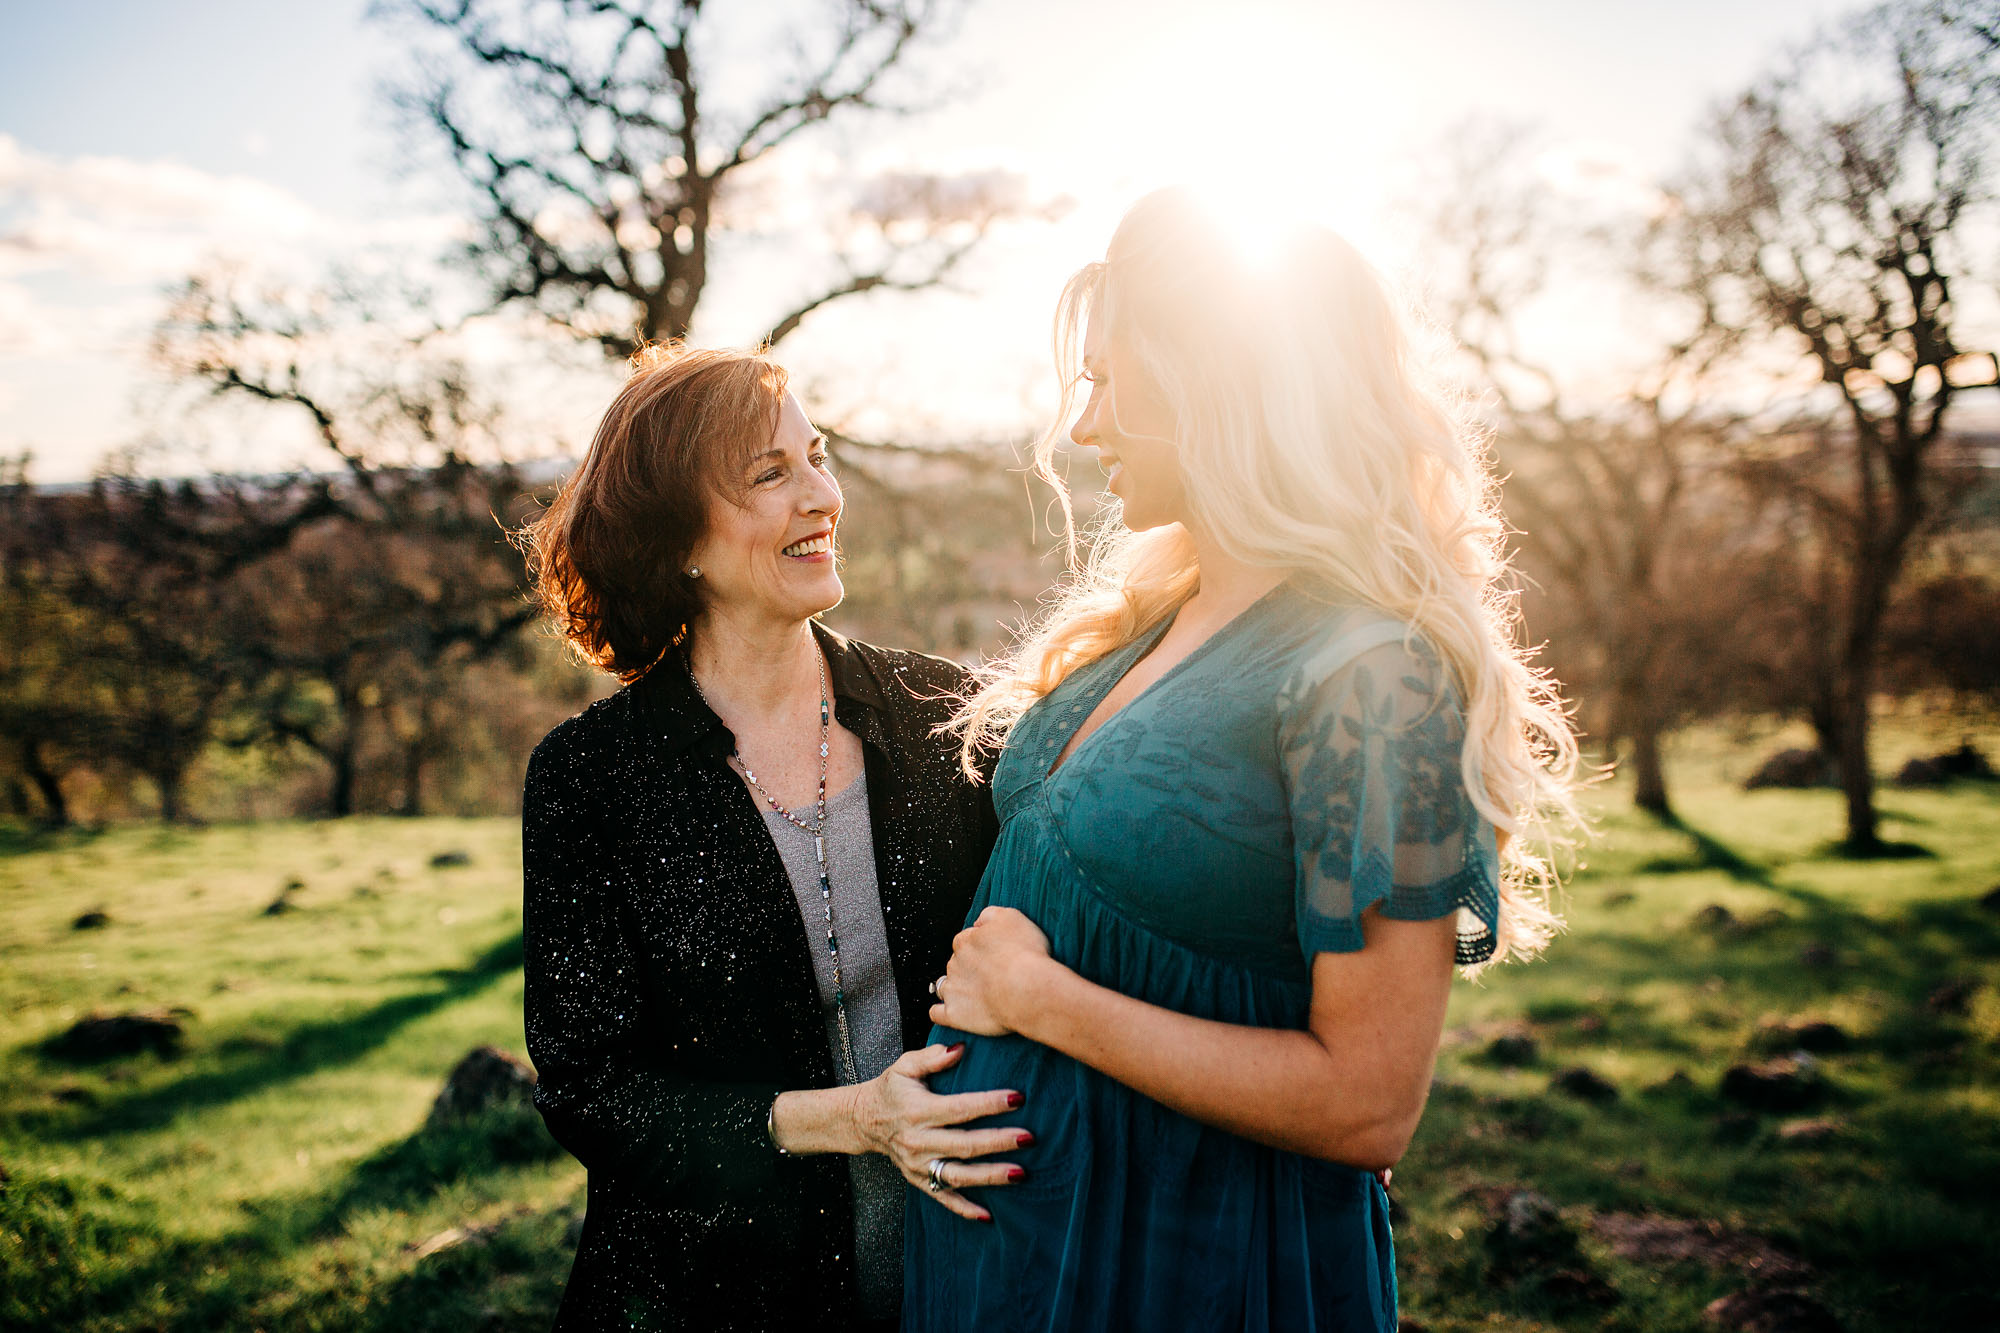 A mother and daughter share a special moment during a maternity photo session with photographer Amy Wright, based out of Roseville, California.